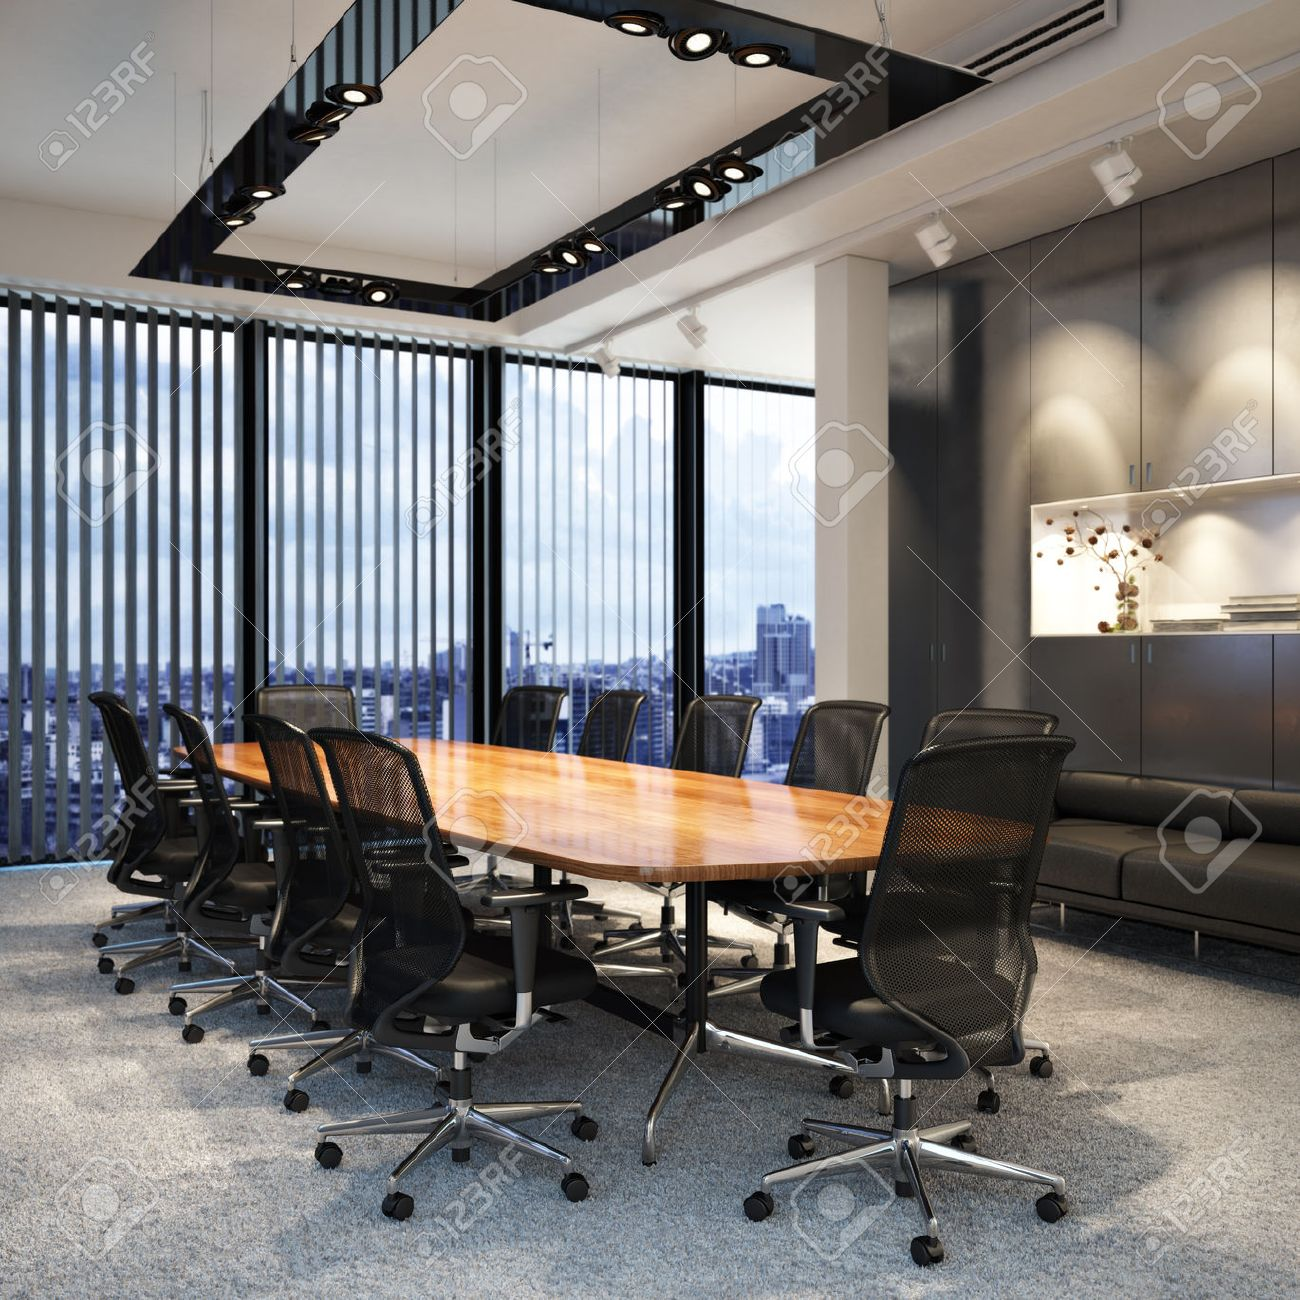 Executive modern empty business office conference room overlooking a city. Photo realistic 3d model scene. Standard-Bild - 52414905